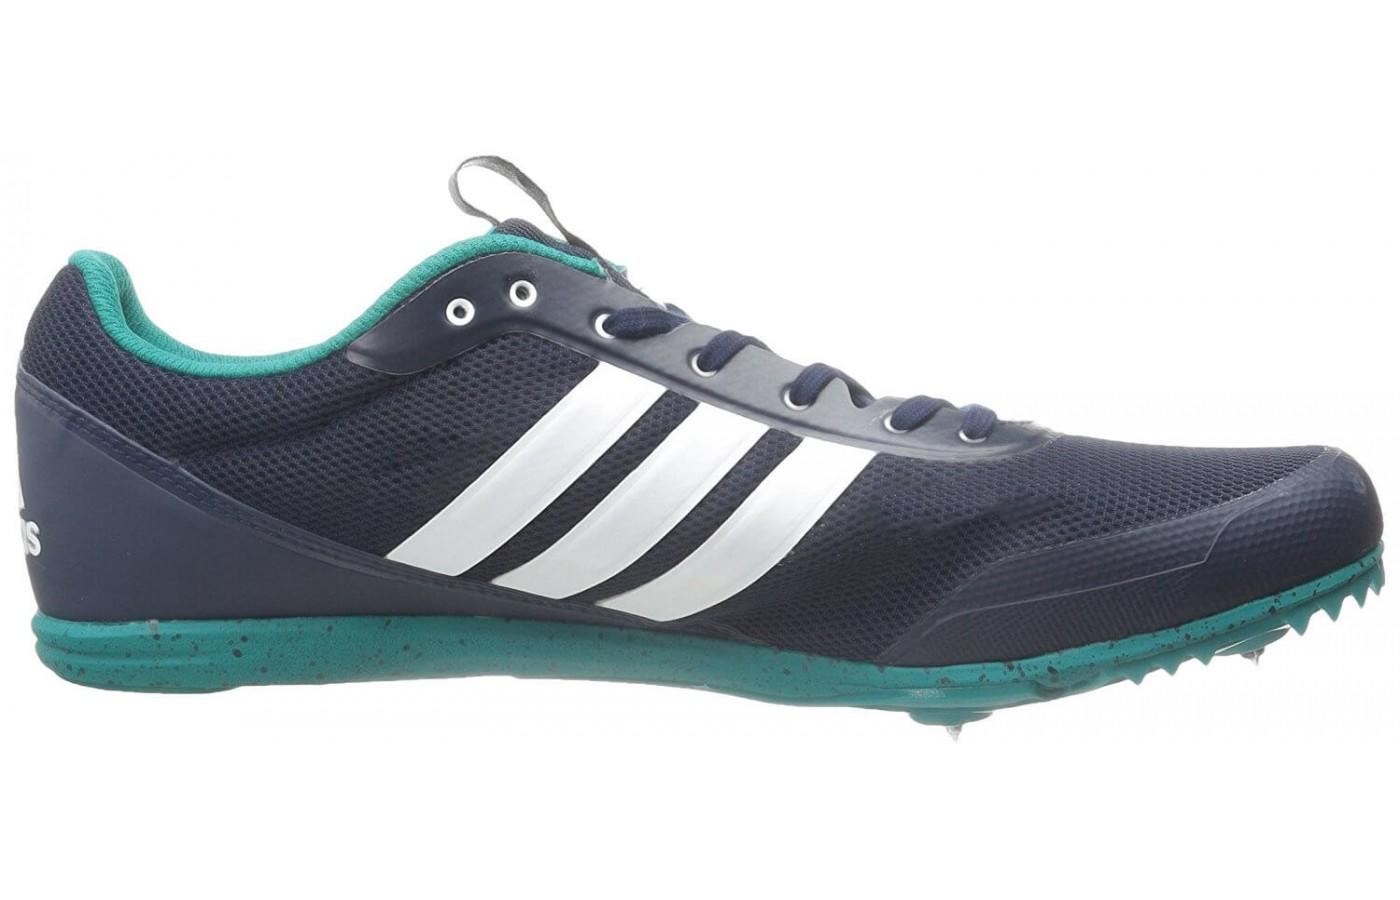 The classic Adidas insignia decorates this shoe